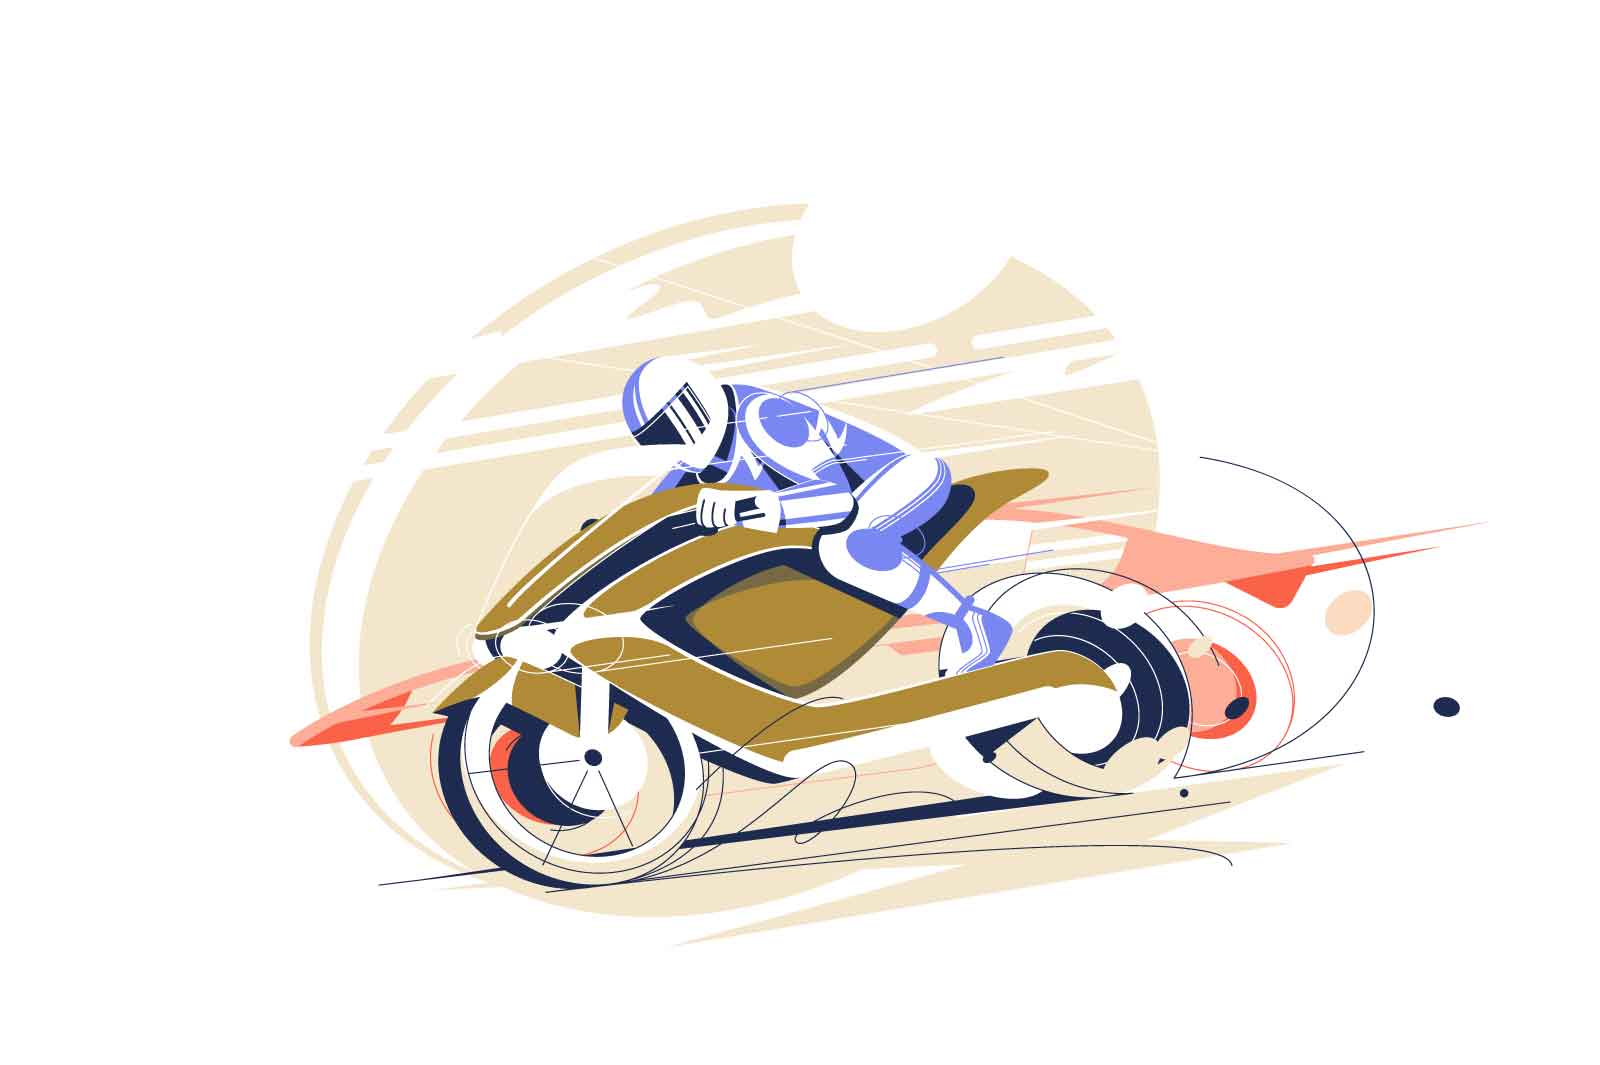 Guy riding cool racing motorcycle vector illustration. Biker man in suit and helmet riding yellow bike flat style. Extreme activity, speed race hobby concept. Isolated on white background